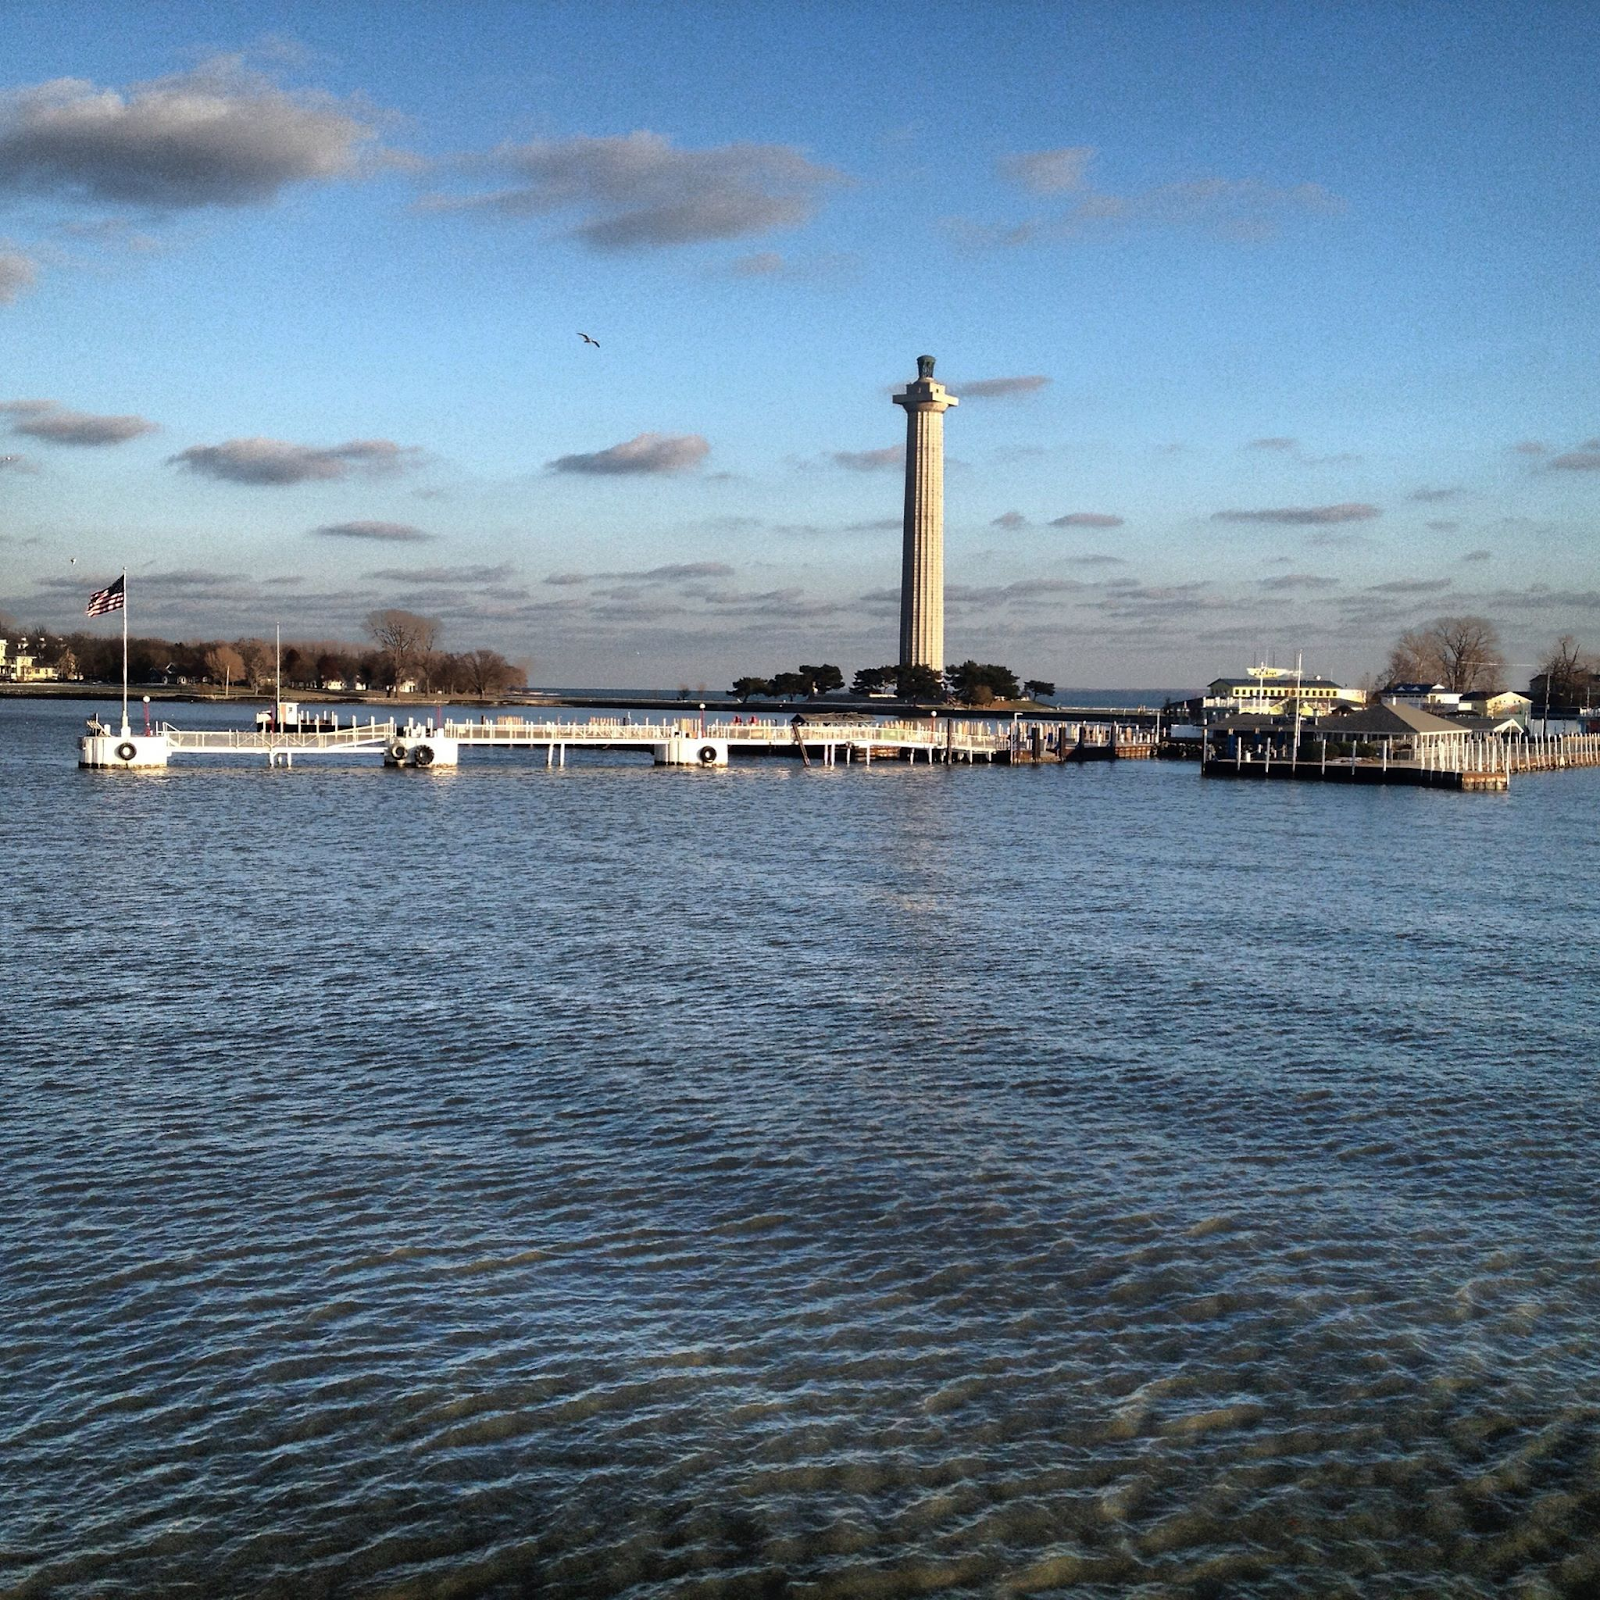 lighthouse, dock, and water of Put-in-Bay